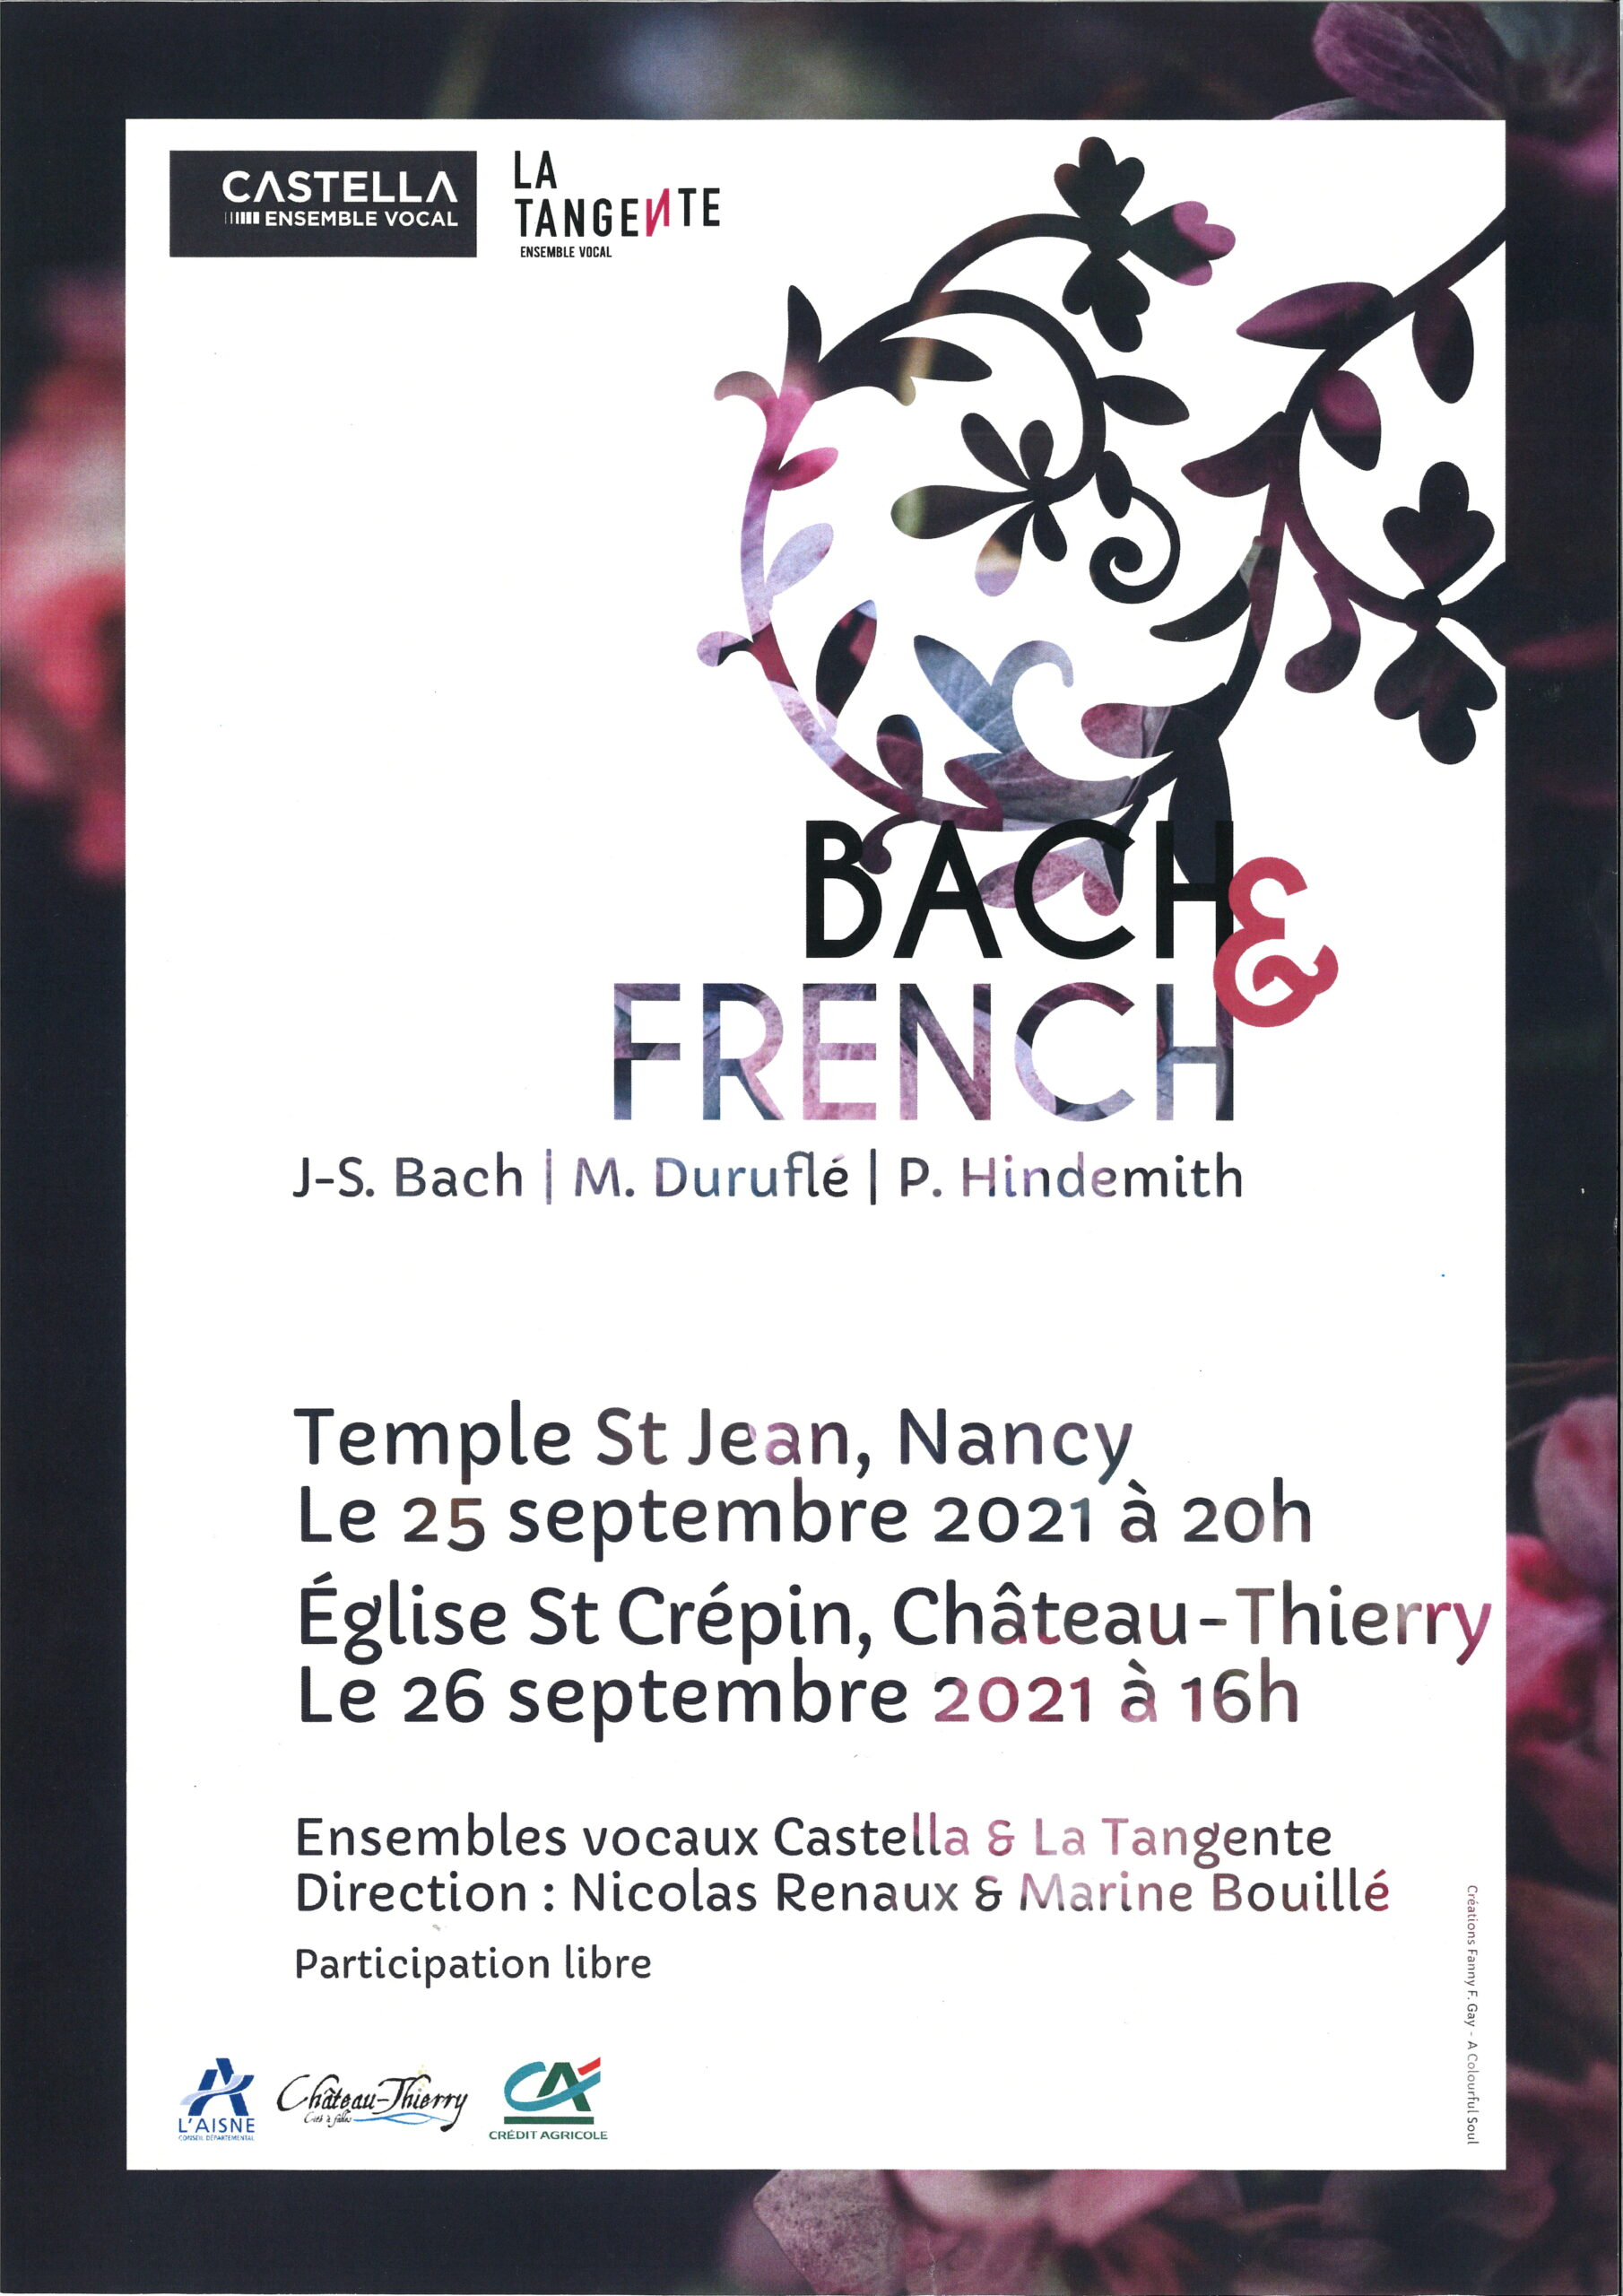 CONCERT :Bach & French Château-Thierry   2021-09-26